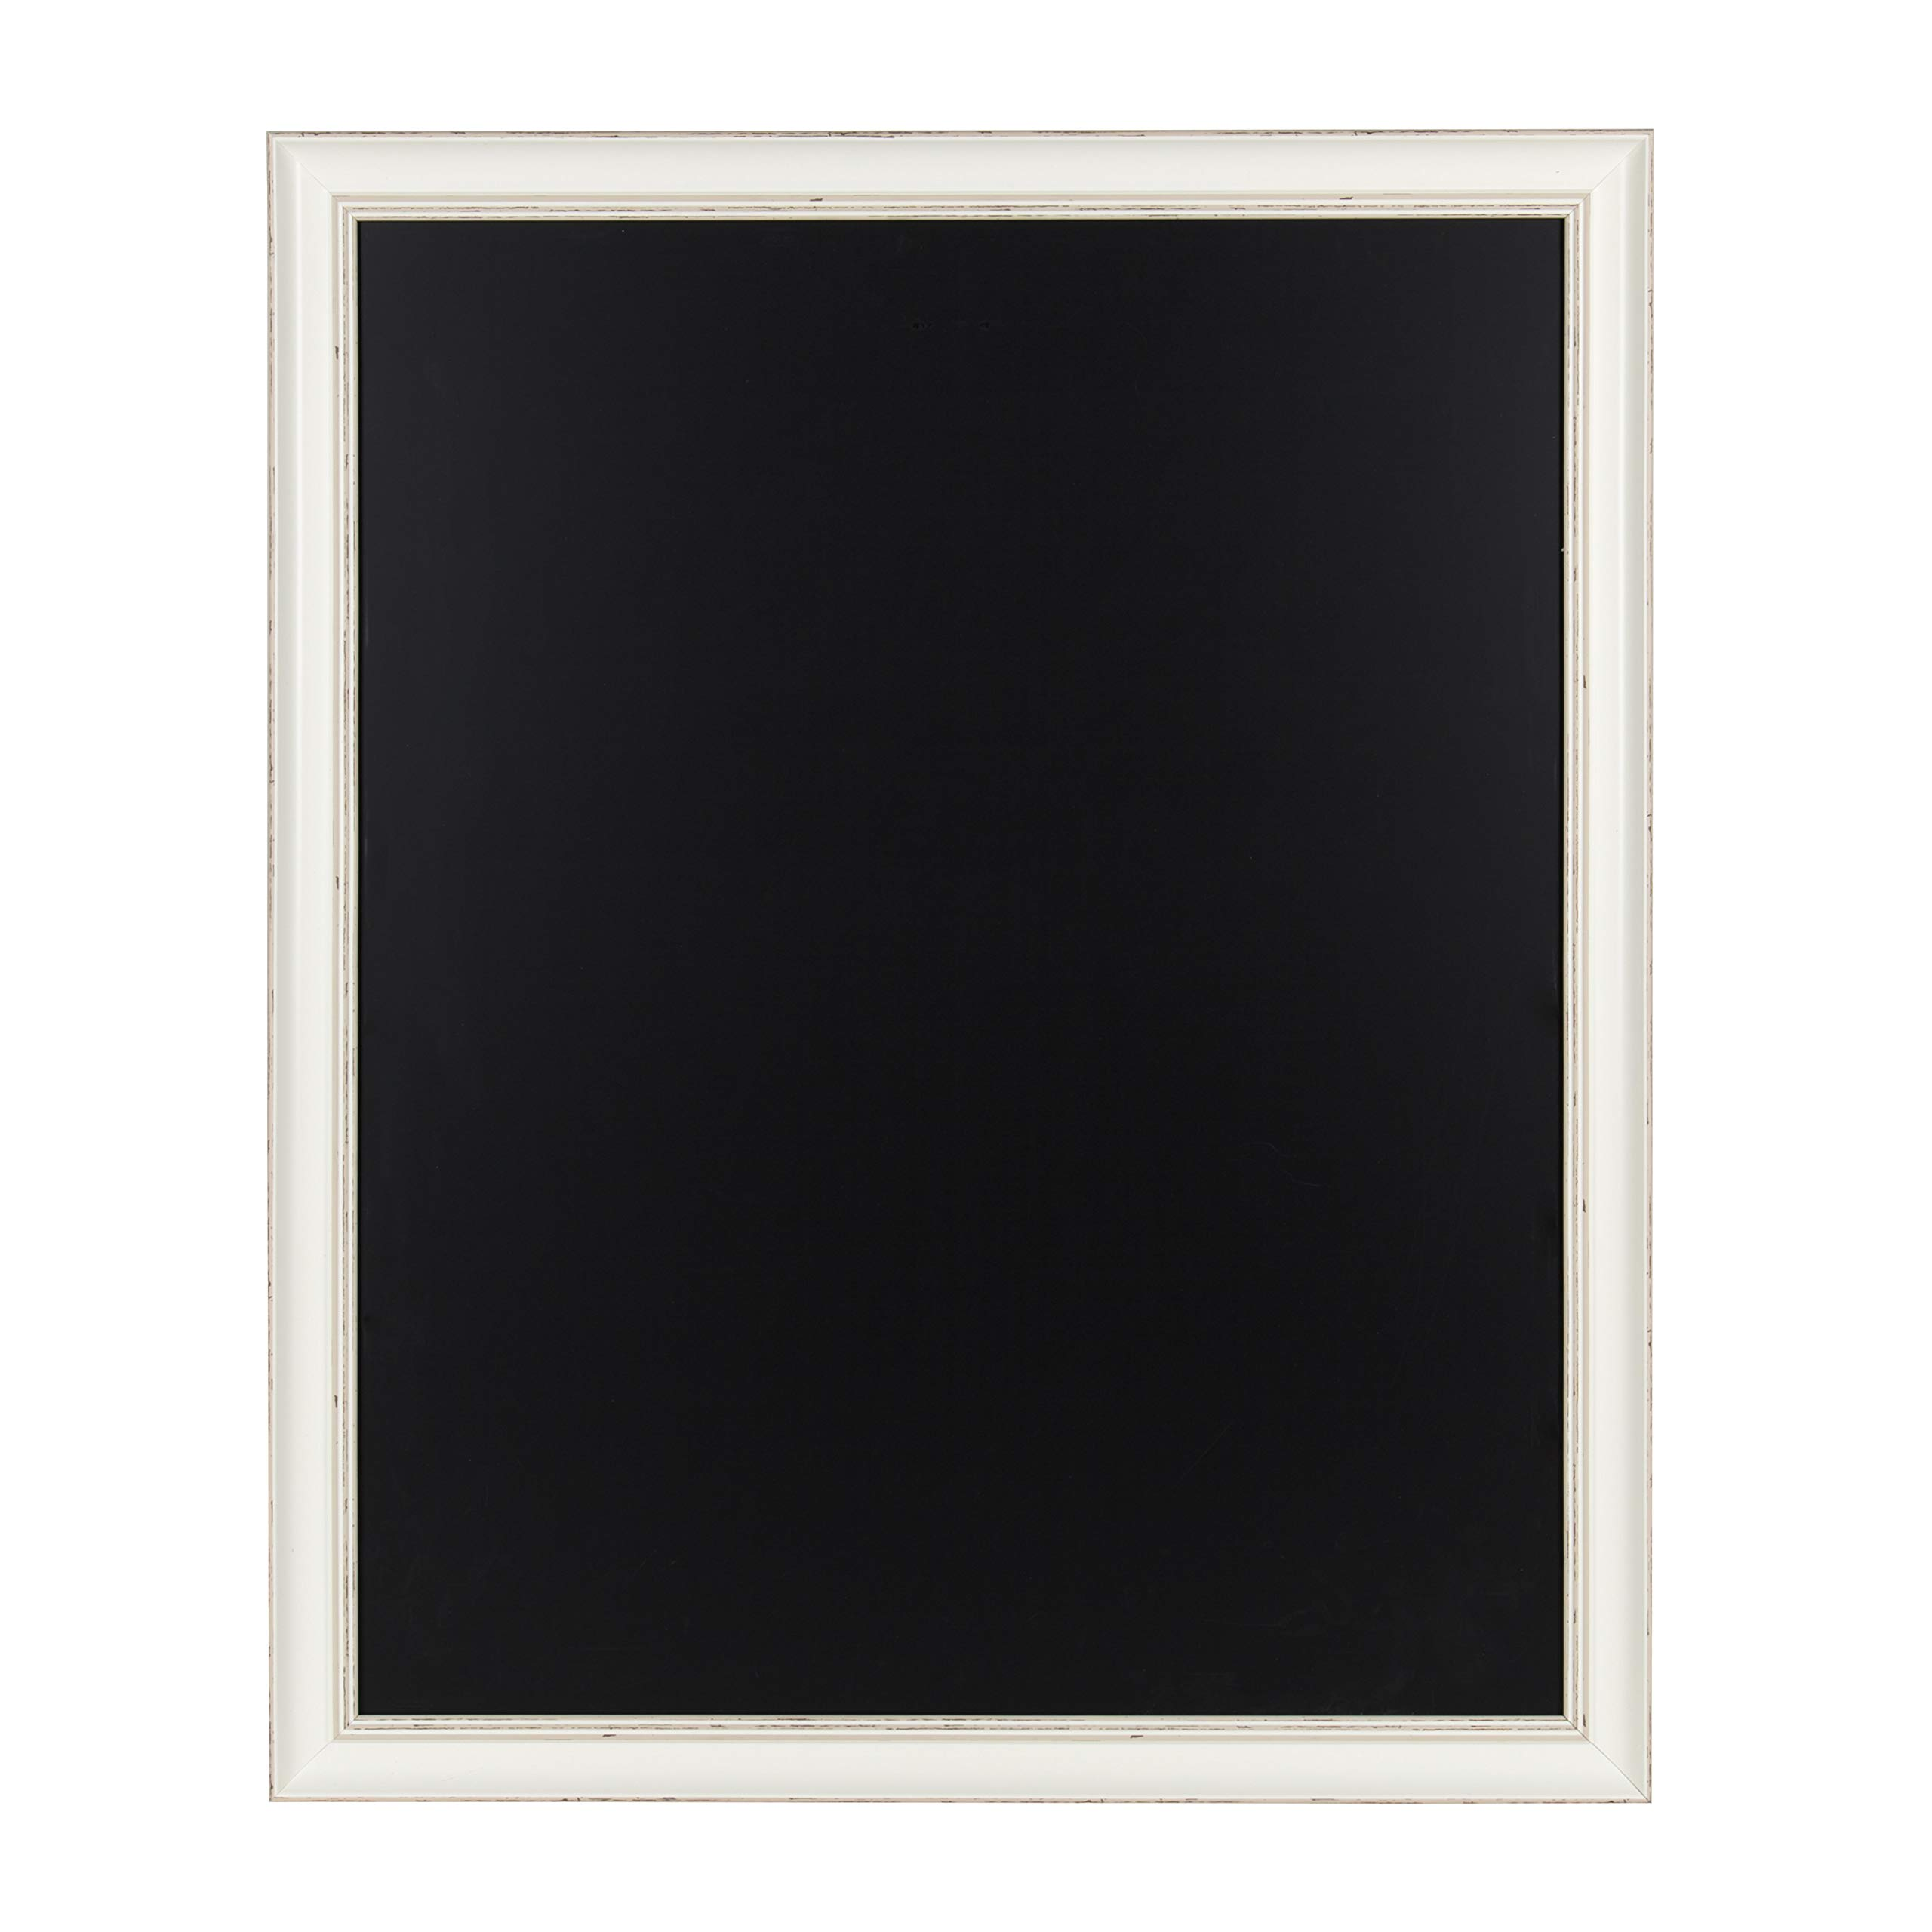 Kate and Laurel Macon Framed Magnetic Chalkboard, 27x33, Soft White by Kate and Laurel